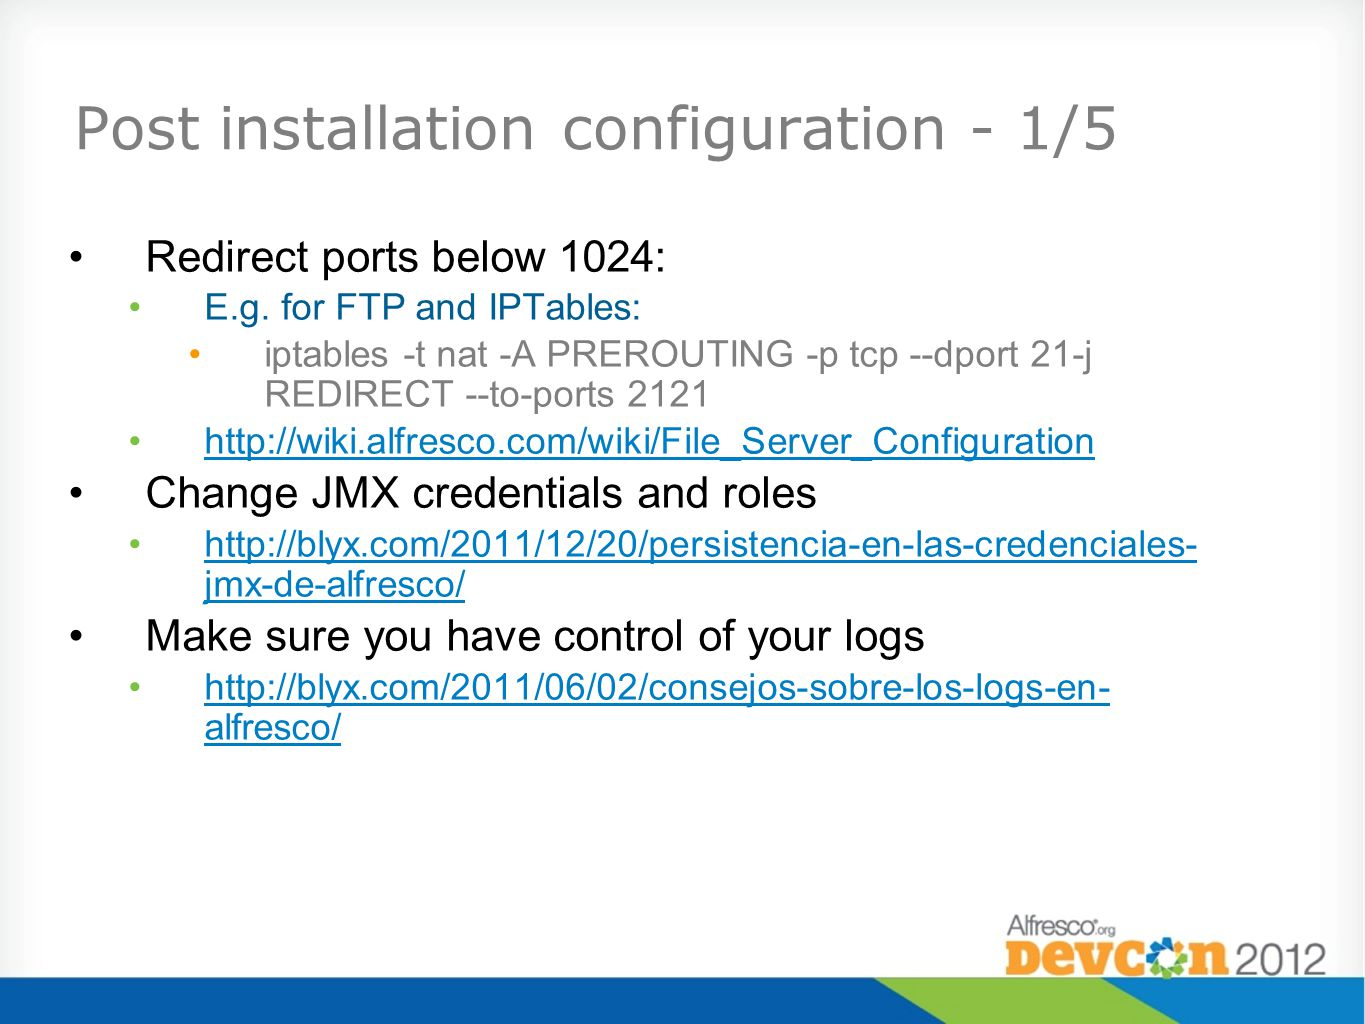 Post installation configuration - 1/5 Redirect ports below 1024: E.g. for FTP and IPTables: iptables -t nat -A PREROUTING -p tcp --dport 21-j REDIRECT